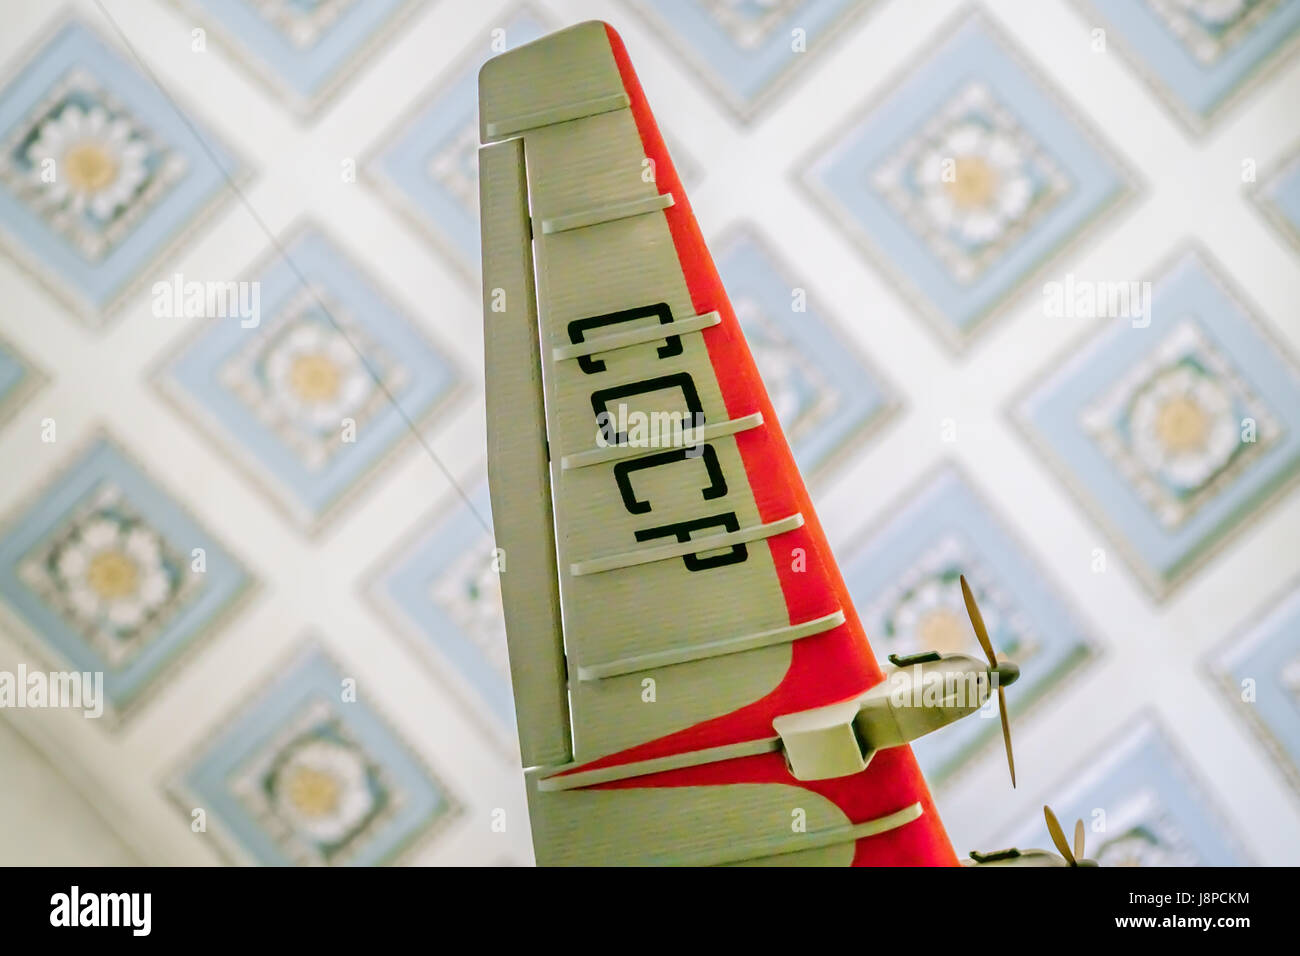 Model of the vintage Soviet airplane hanging  in the air - Stock Image